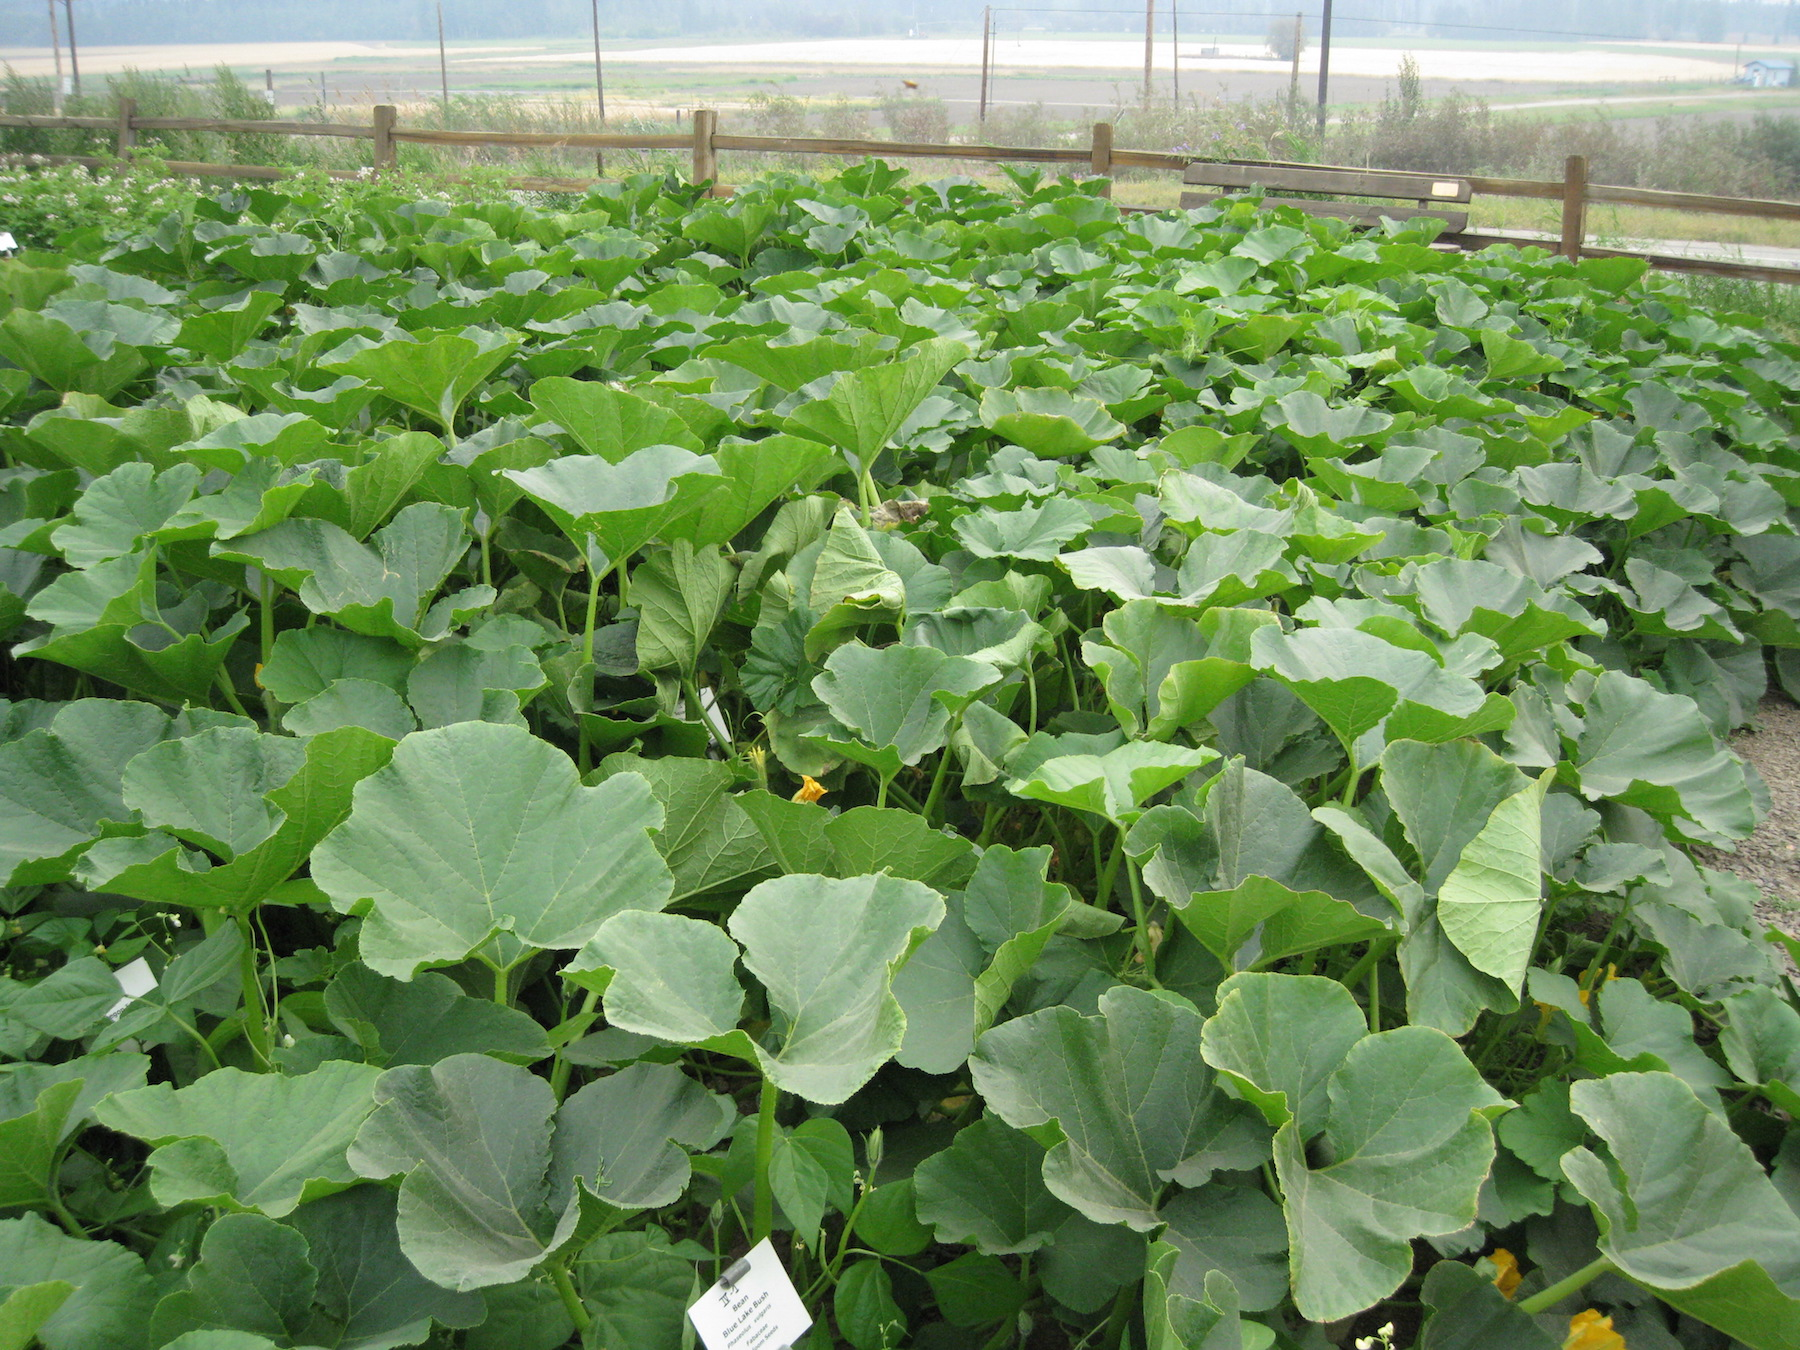 Vibrant green winter squash vines sprawling as they grow.